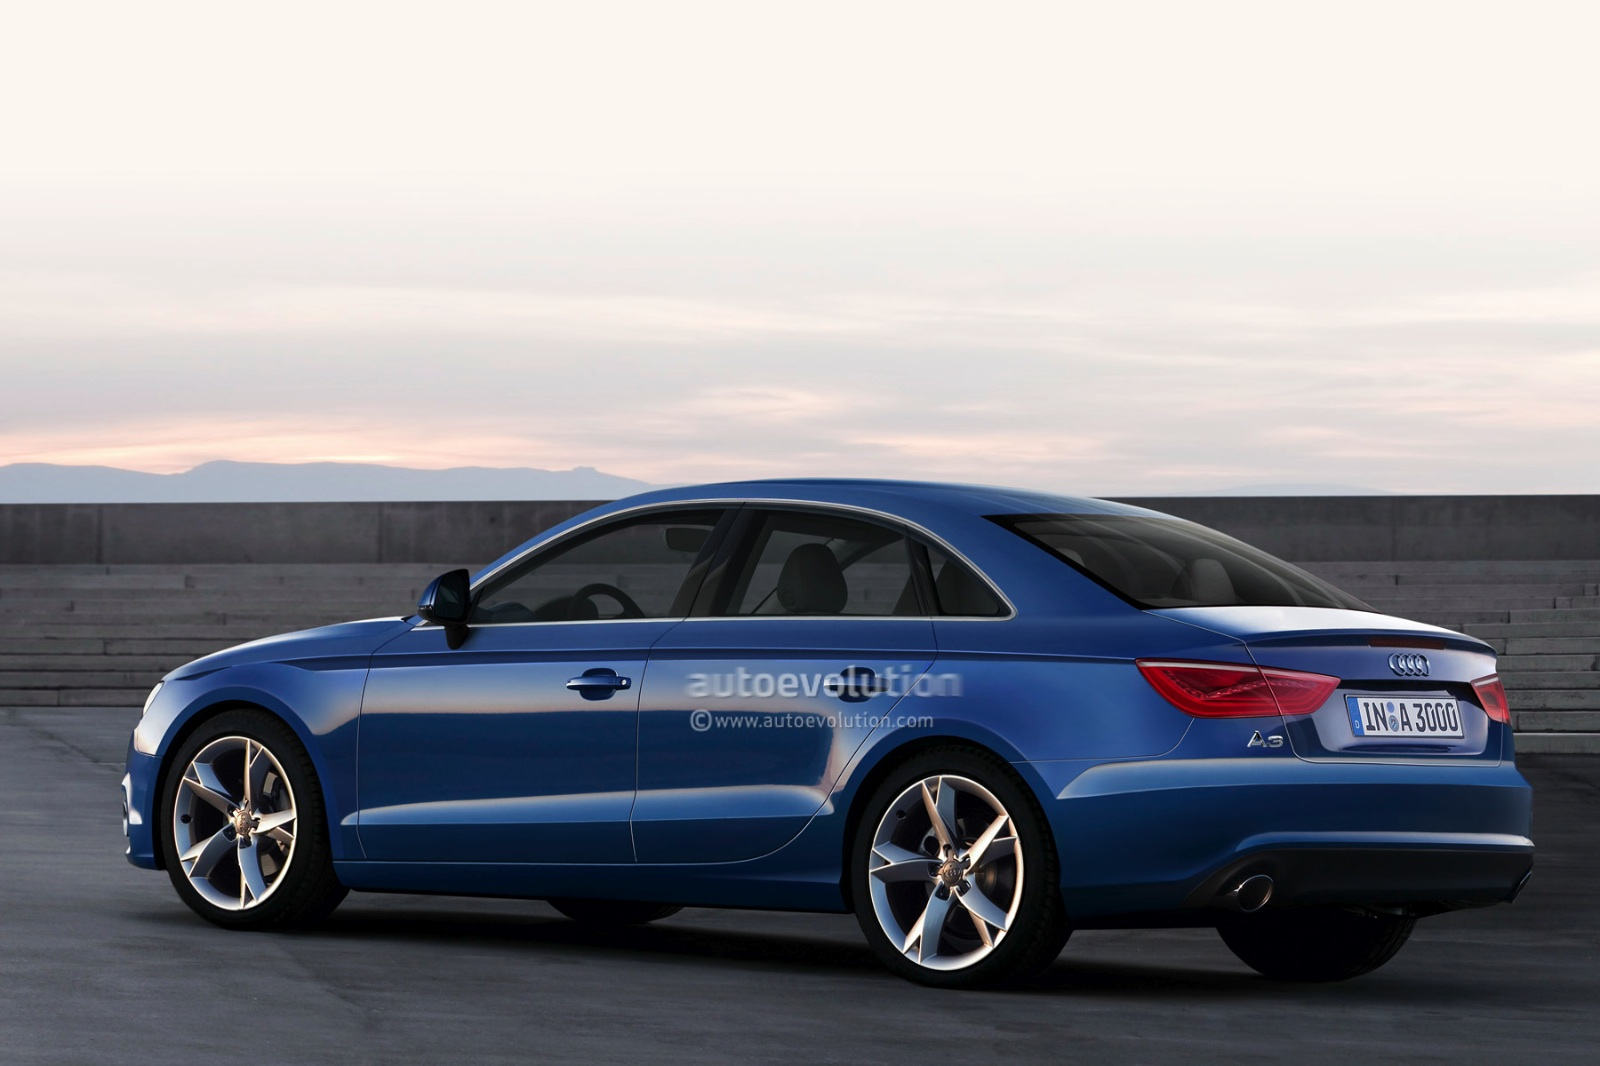 2013 audi a3 sedan rendered autoevolution. Black Bedroom Furniture Sets. Home Design Ideas